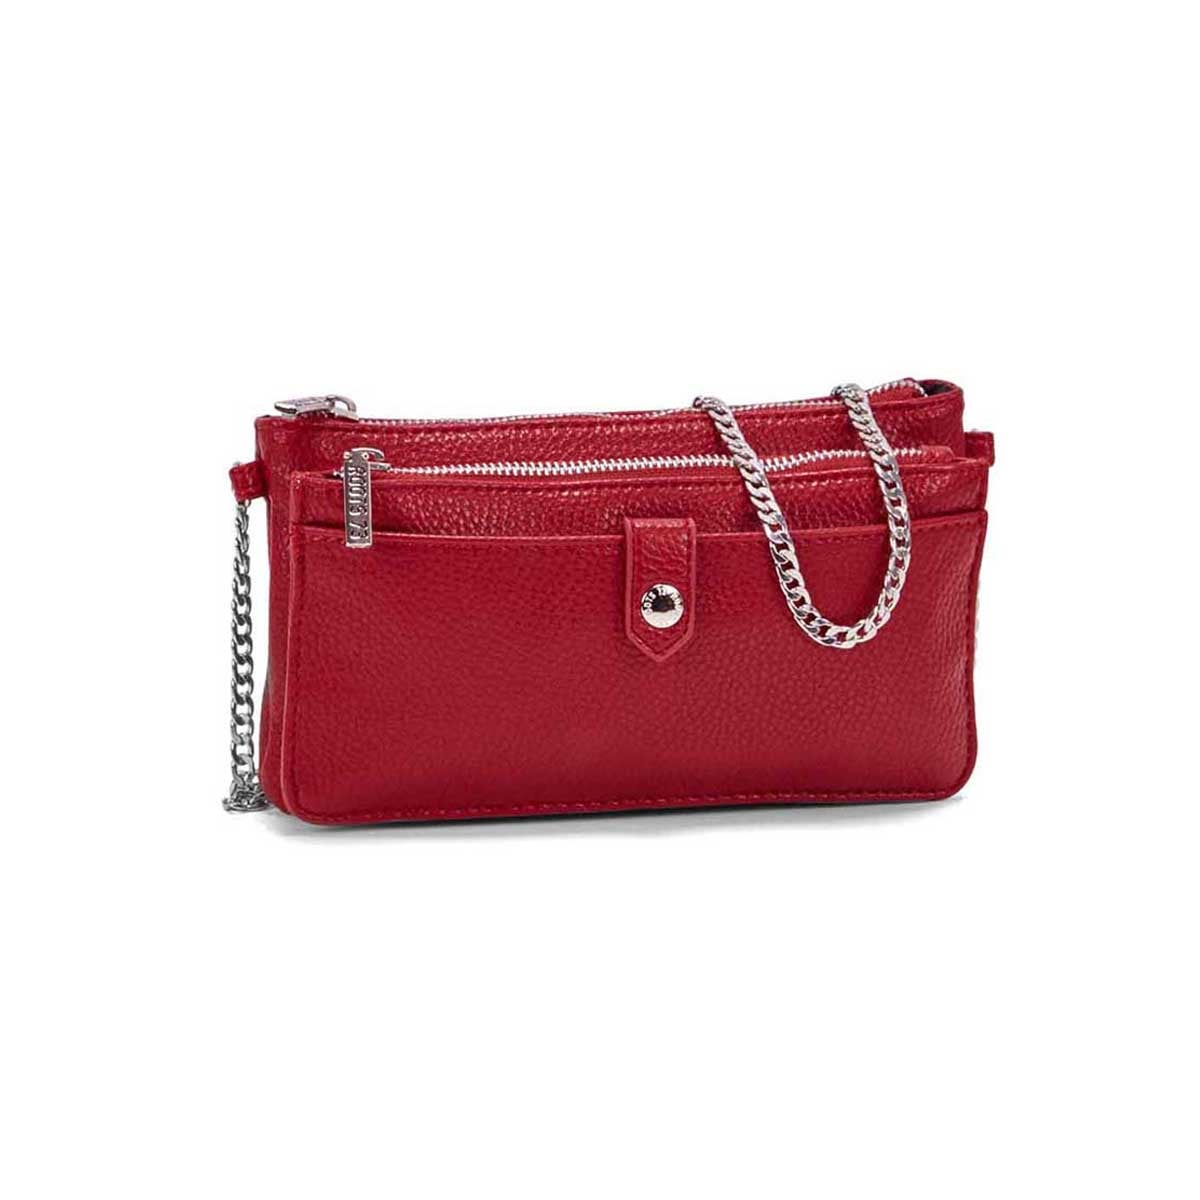 Women's R5464 red mini shoulder bag